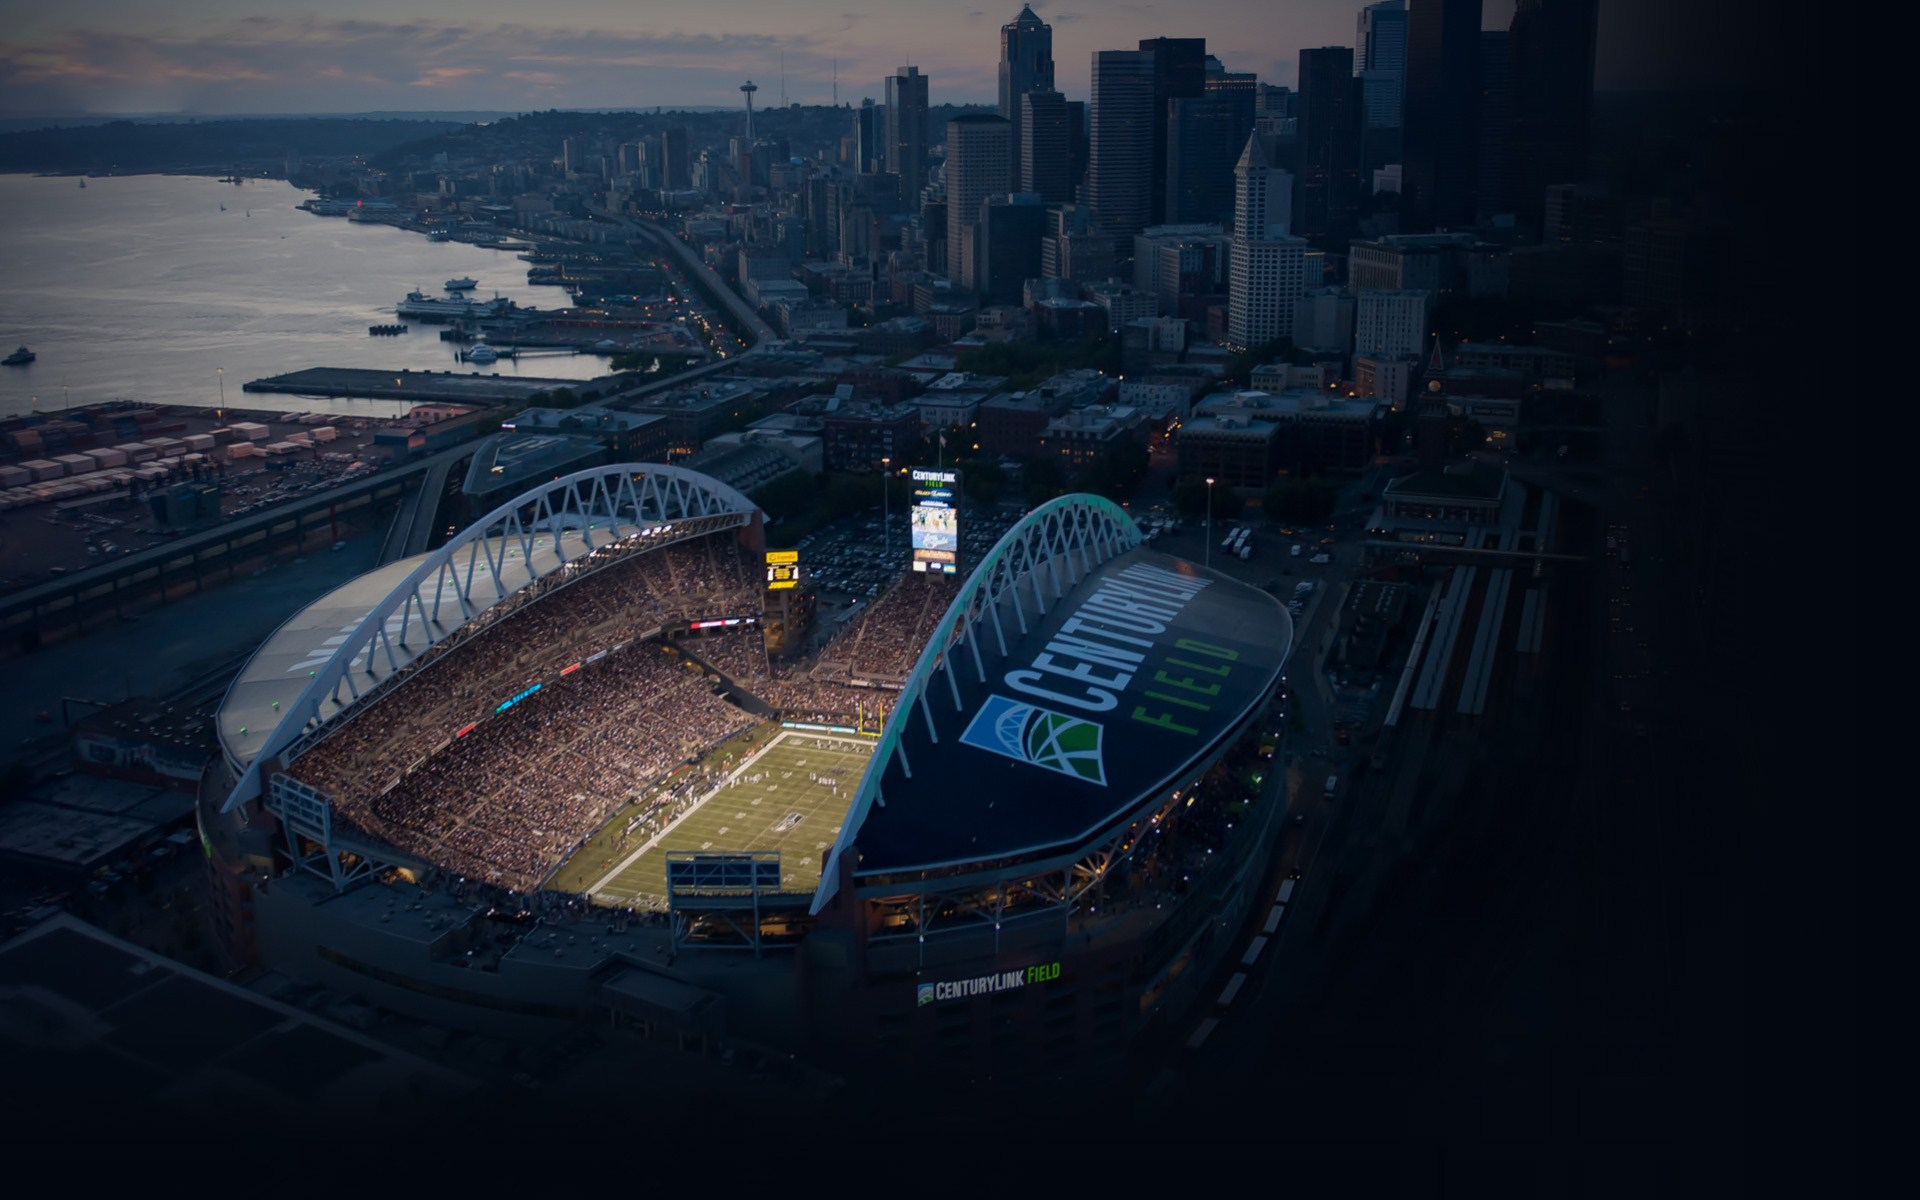 Seattle Seahawks Wallpaper 1920x1080: 1 Seattle Seahawks Stadium HD Wallpapers